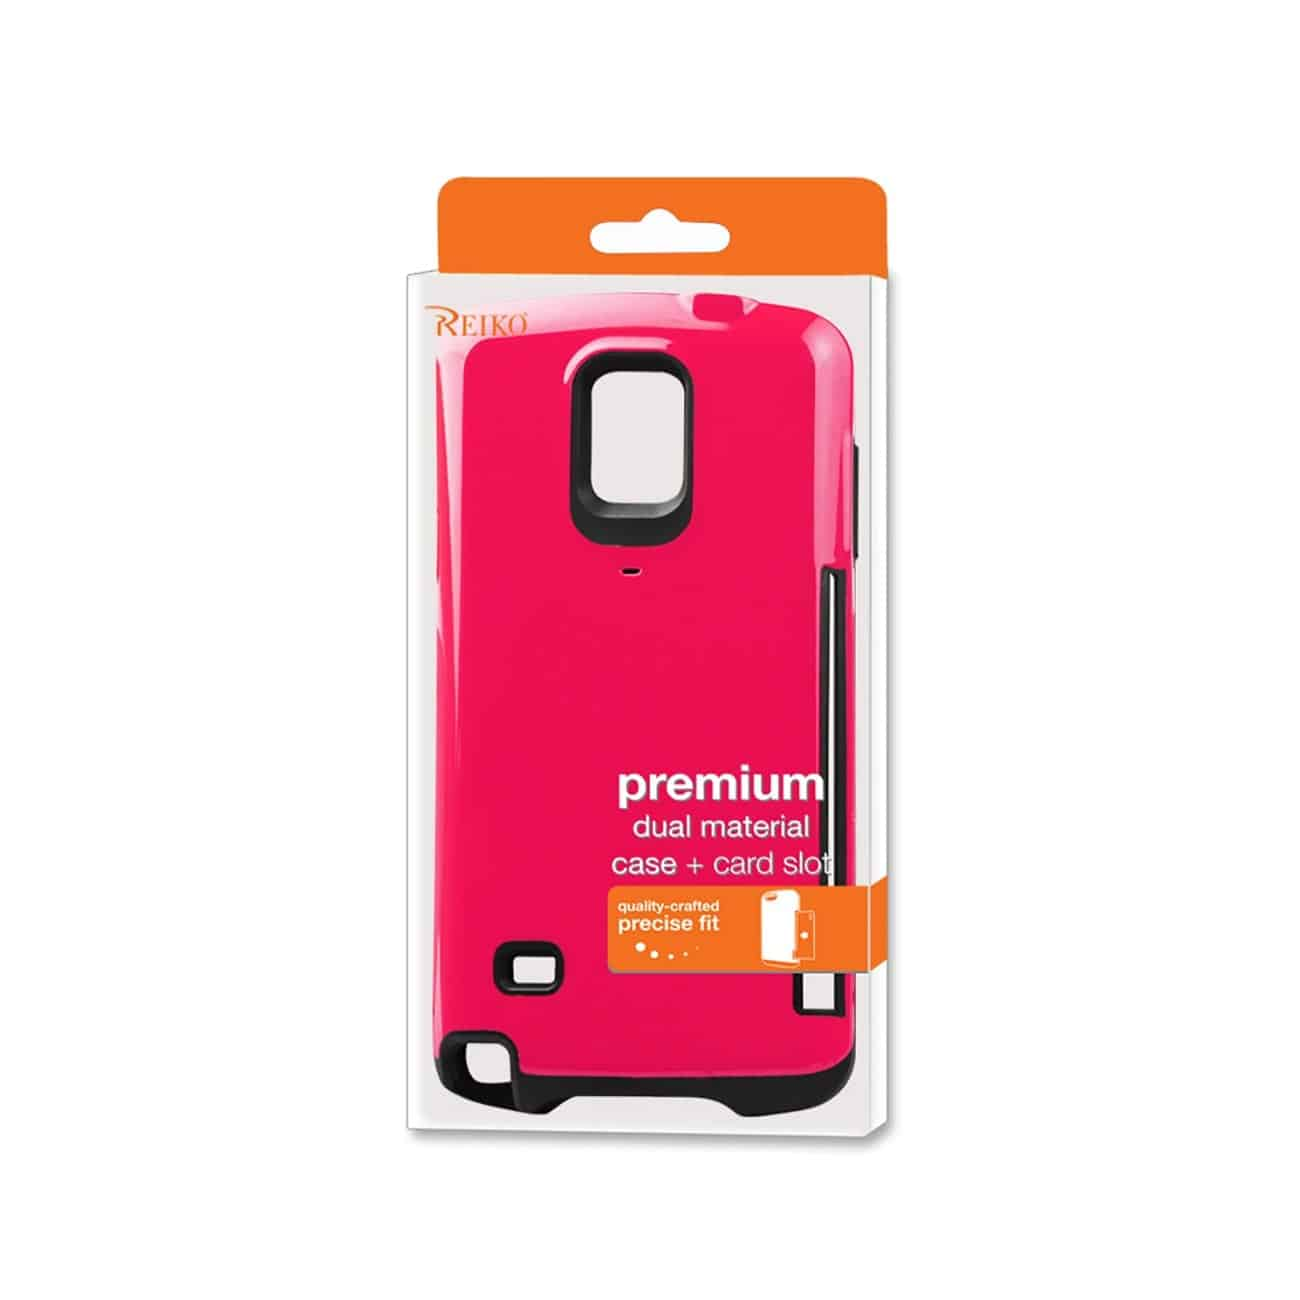 SAMSUNG GALAXY NOTE 4 CANDY SHIELD CASE WITH CARD HOLDER IN HOT PINK